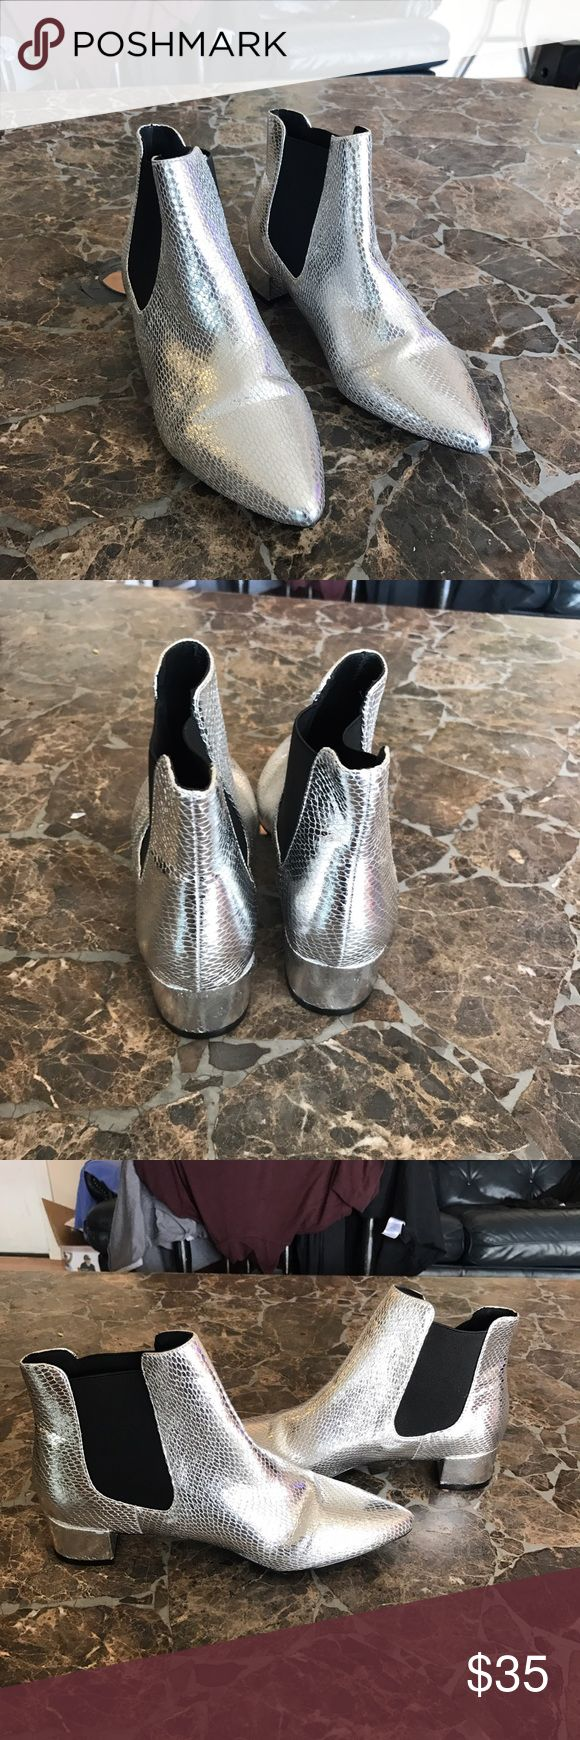 Topshop silver ankle boots NWOT ❗️✔️ In perfect condition never been worn topshop boots Topshop Shoes Ankle Boots & Booties